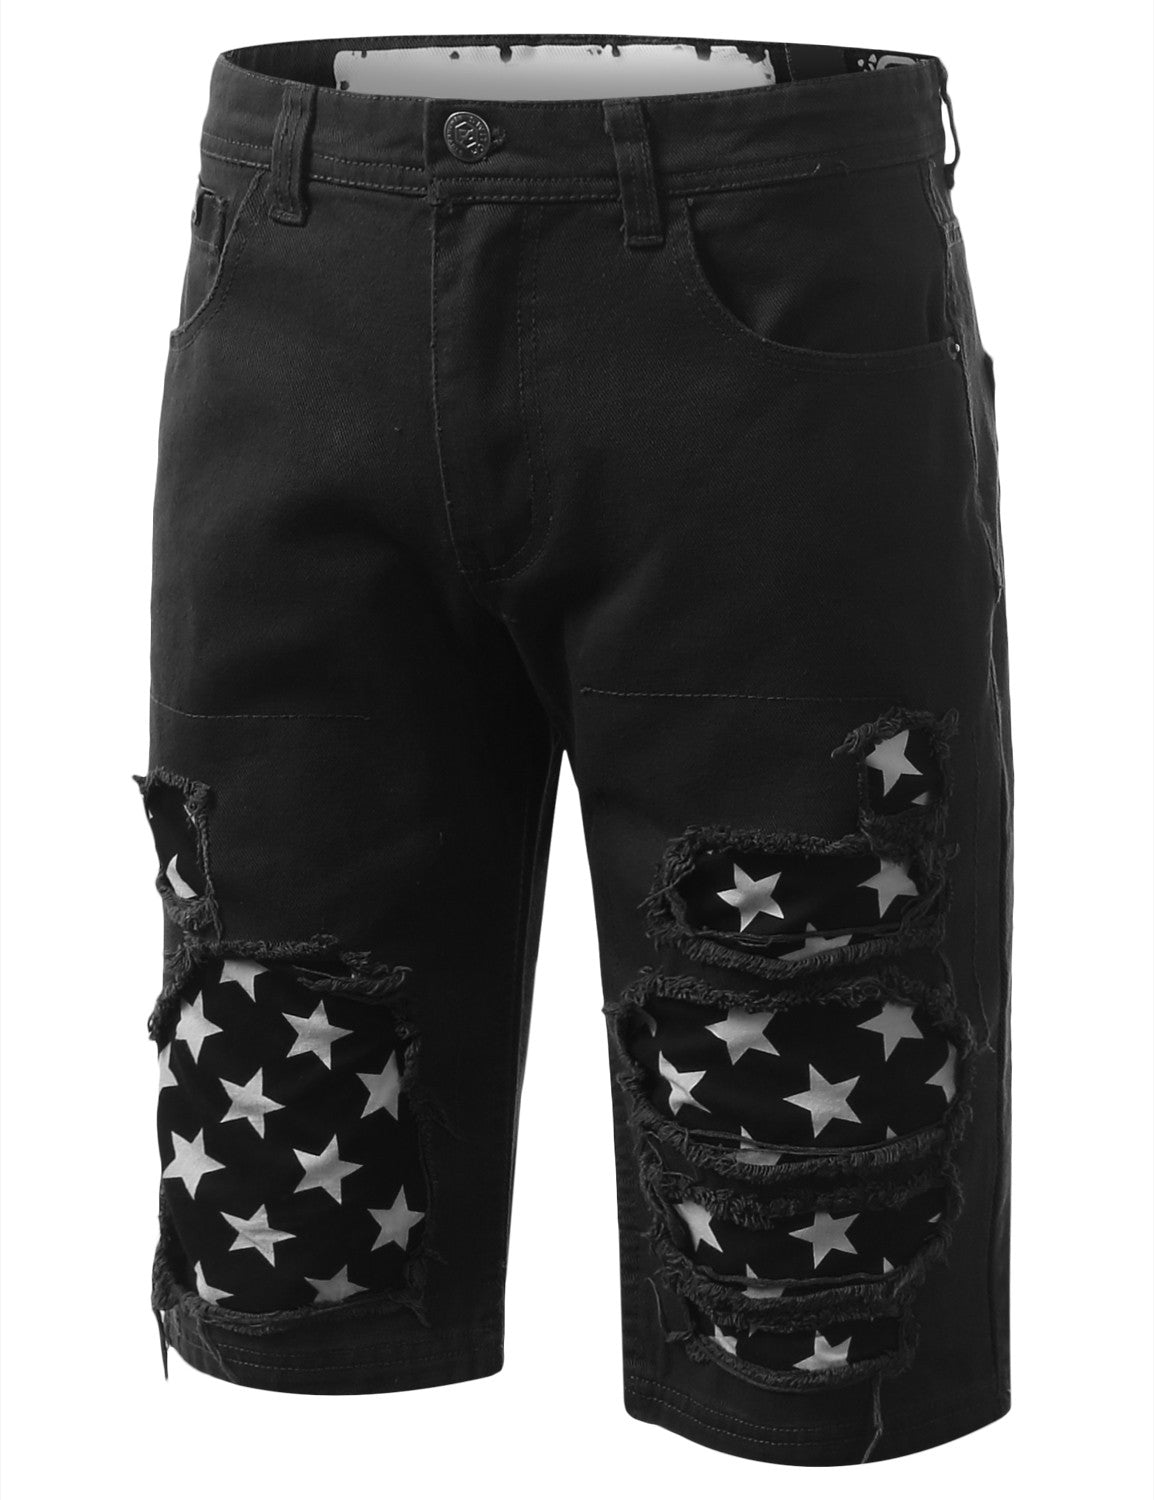 Rip Star Patch Denim Shorts - URBANCREWS - 4